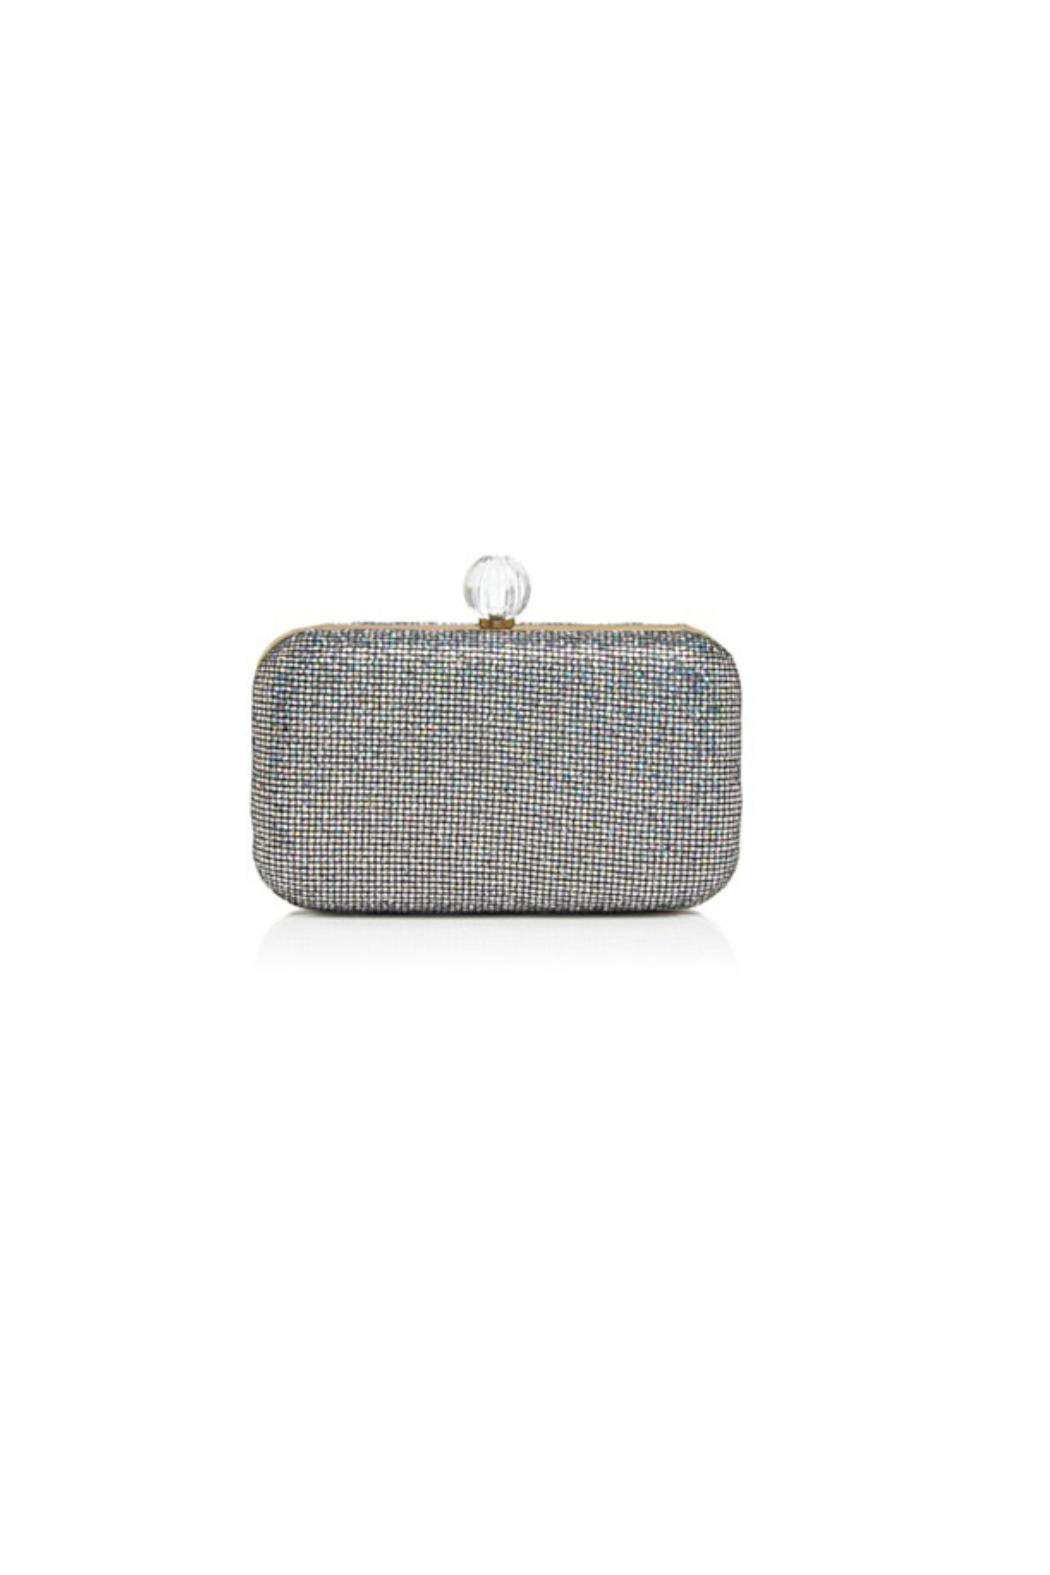 Ladybird Clutch-Accessories-SJP Collection-Max & Riley